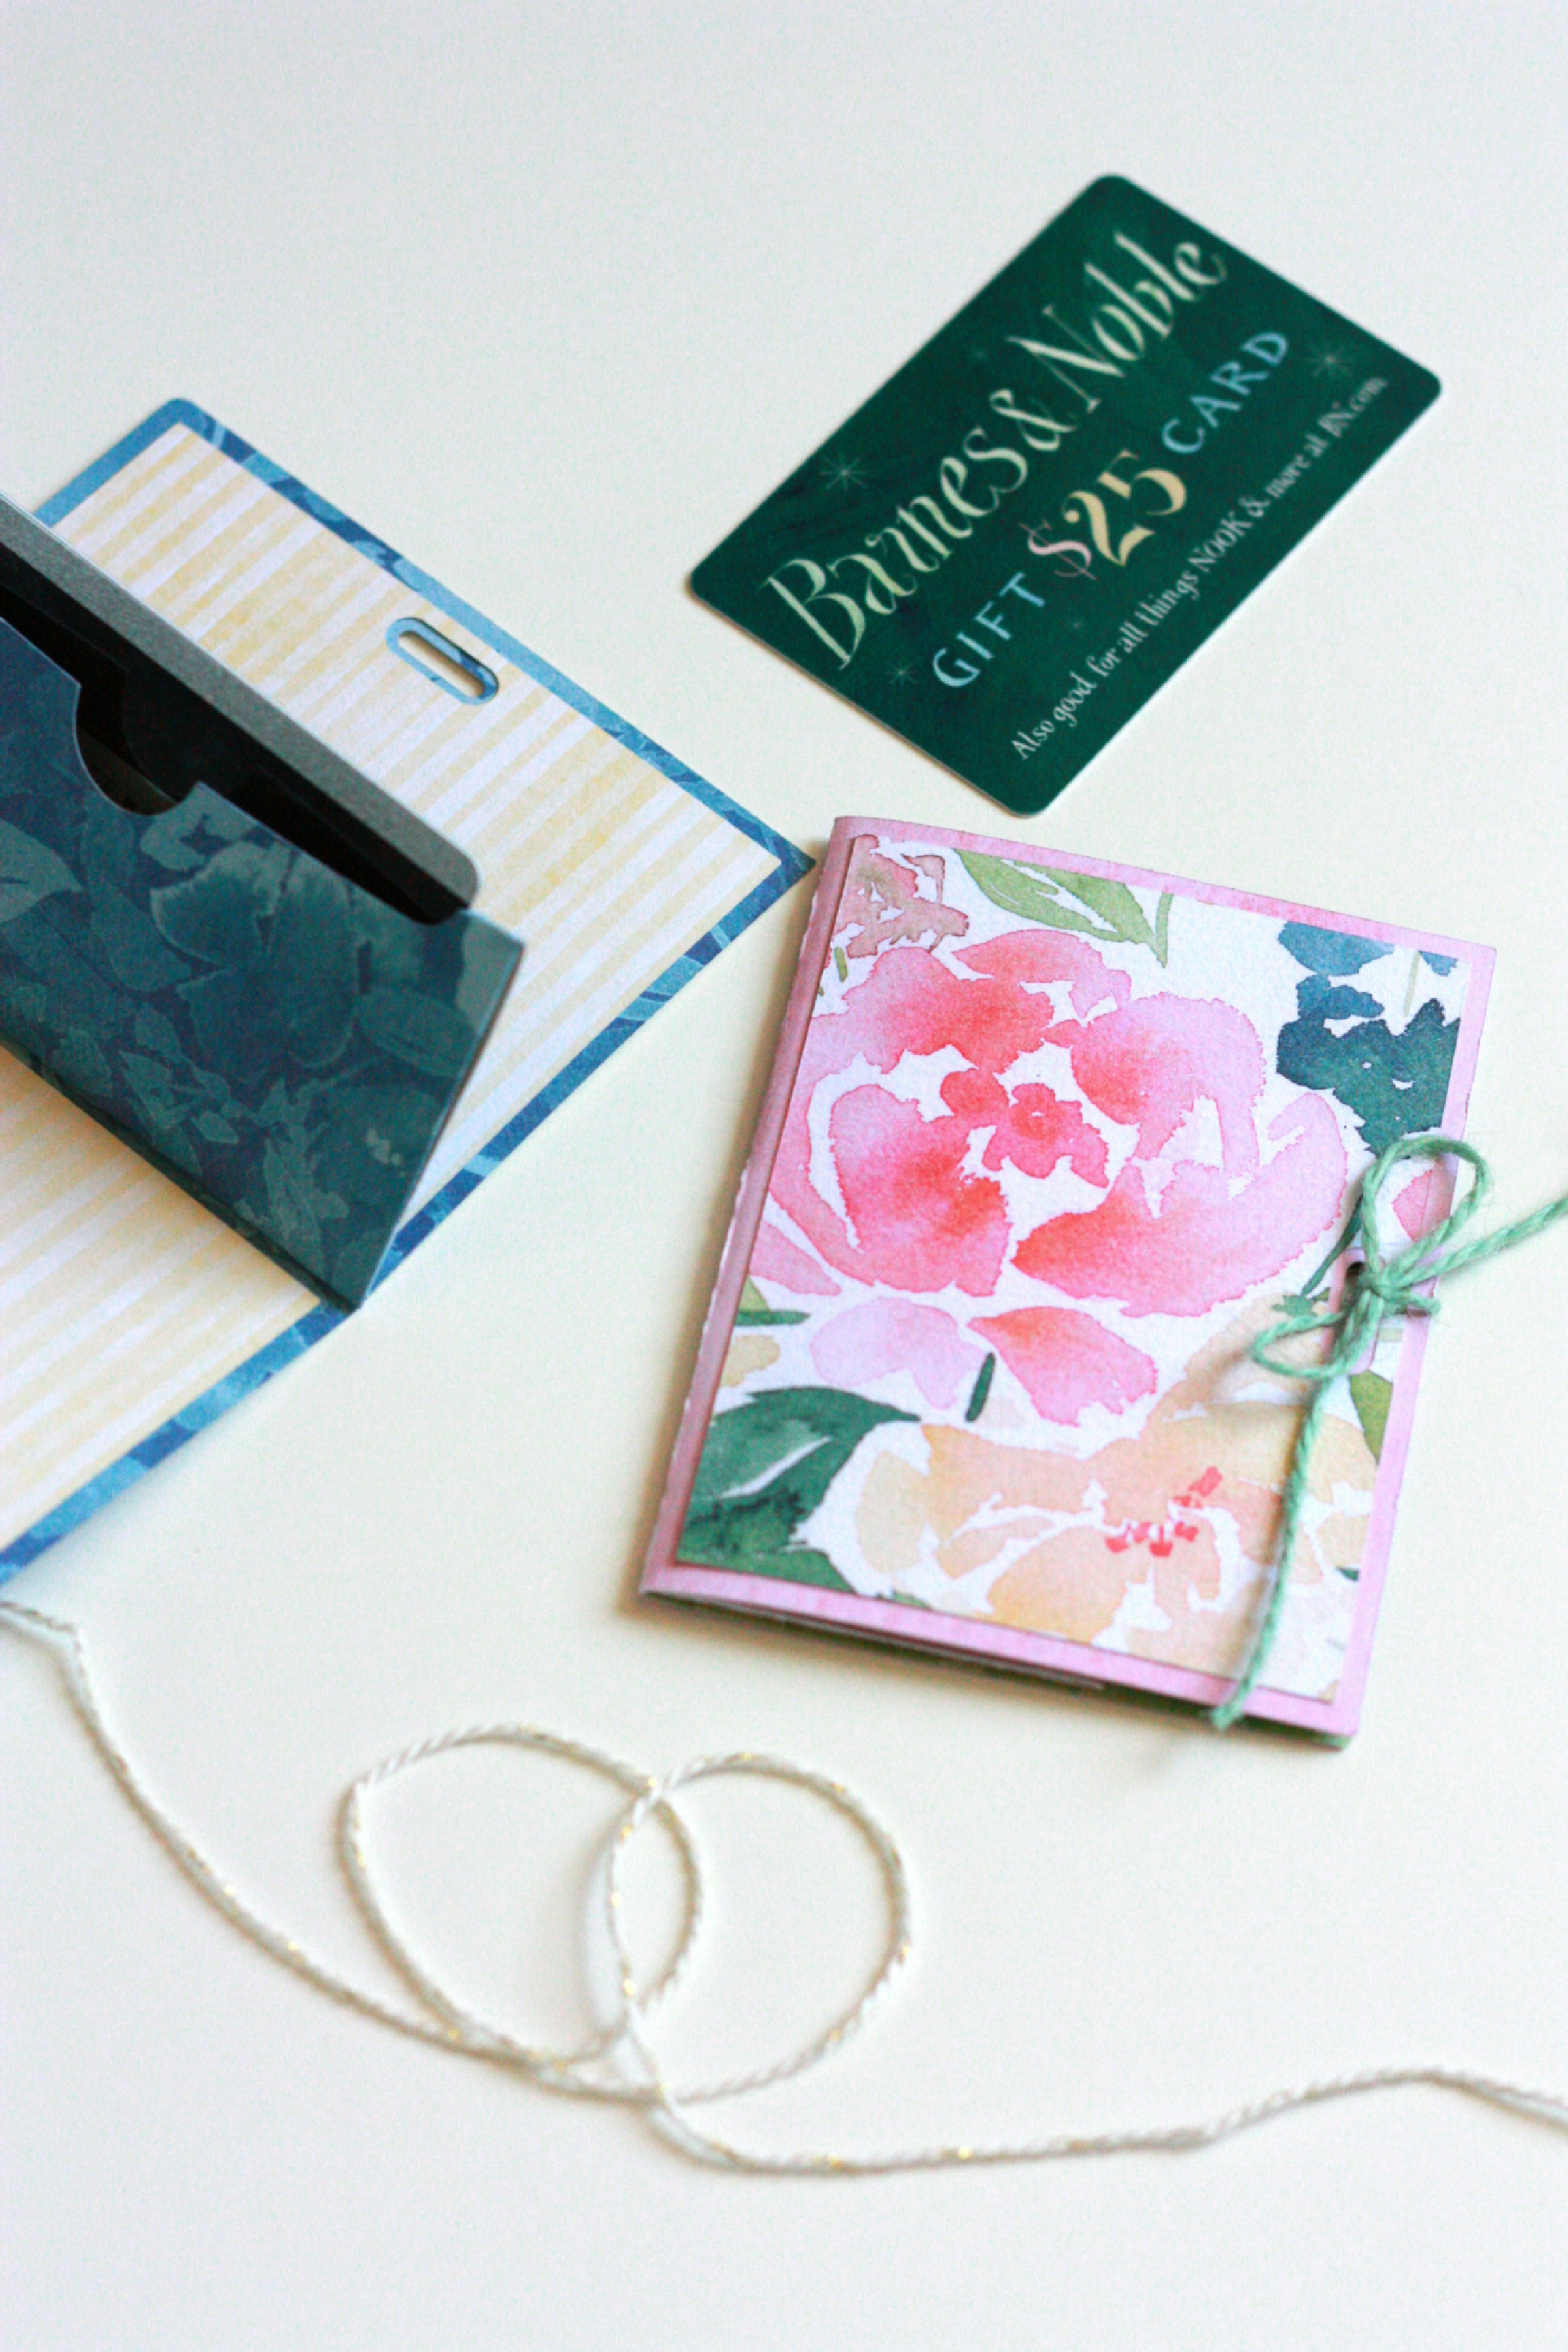 Diy gift card holder with cricut explore air 2 everyday jenny gift card holder made with cricut explore air 2 m4hsunfo